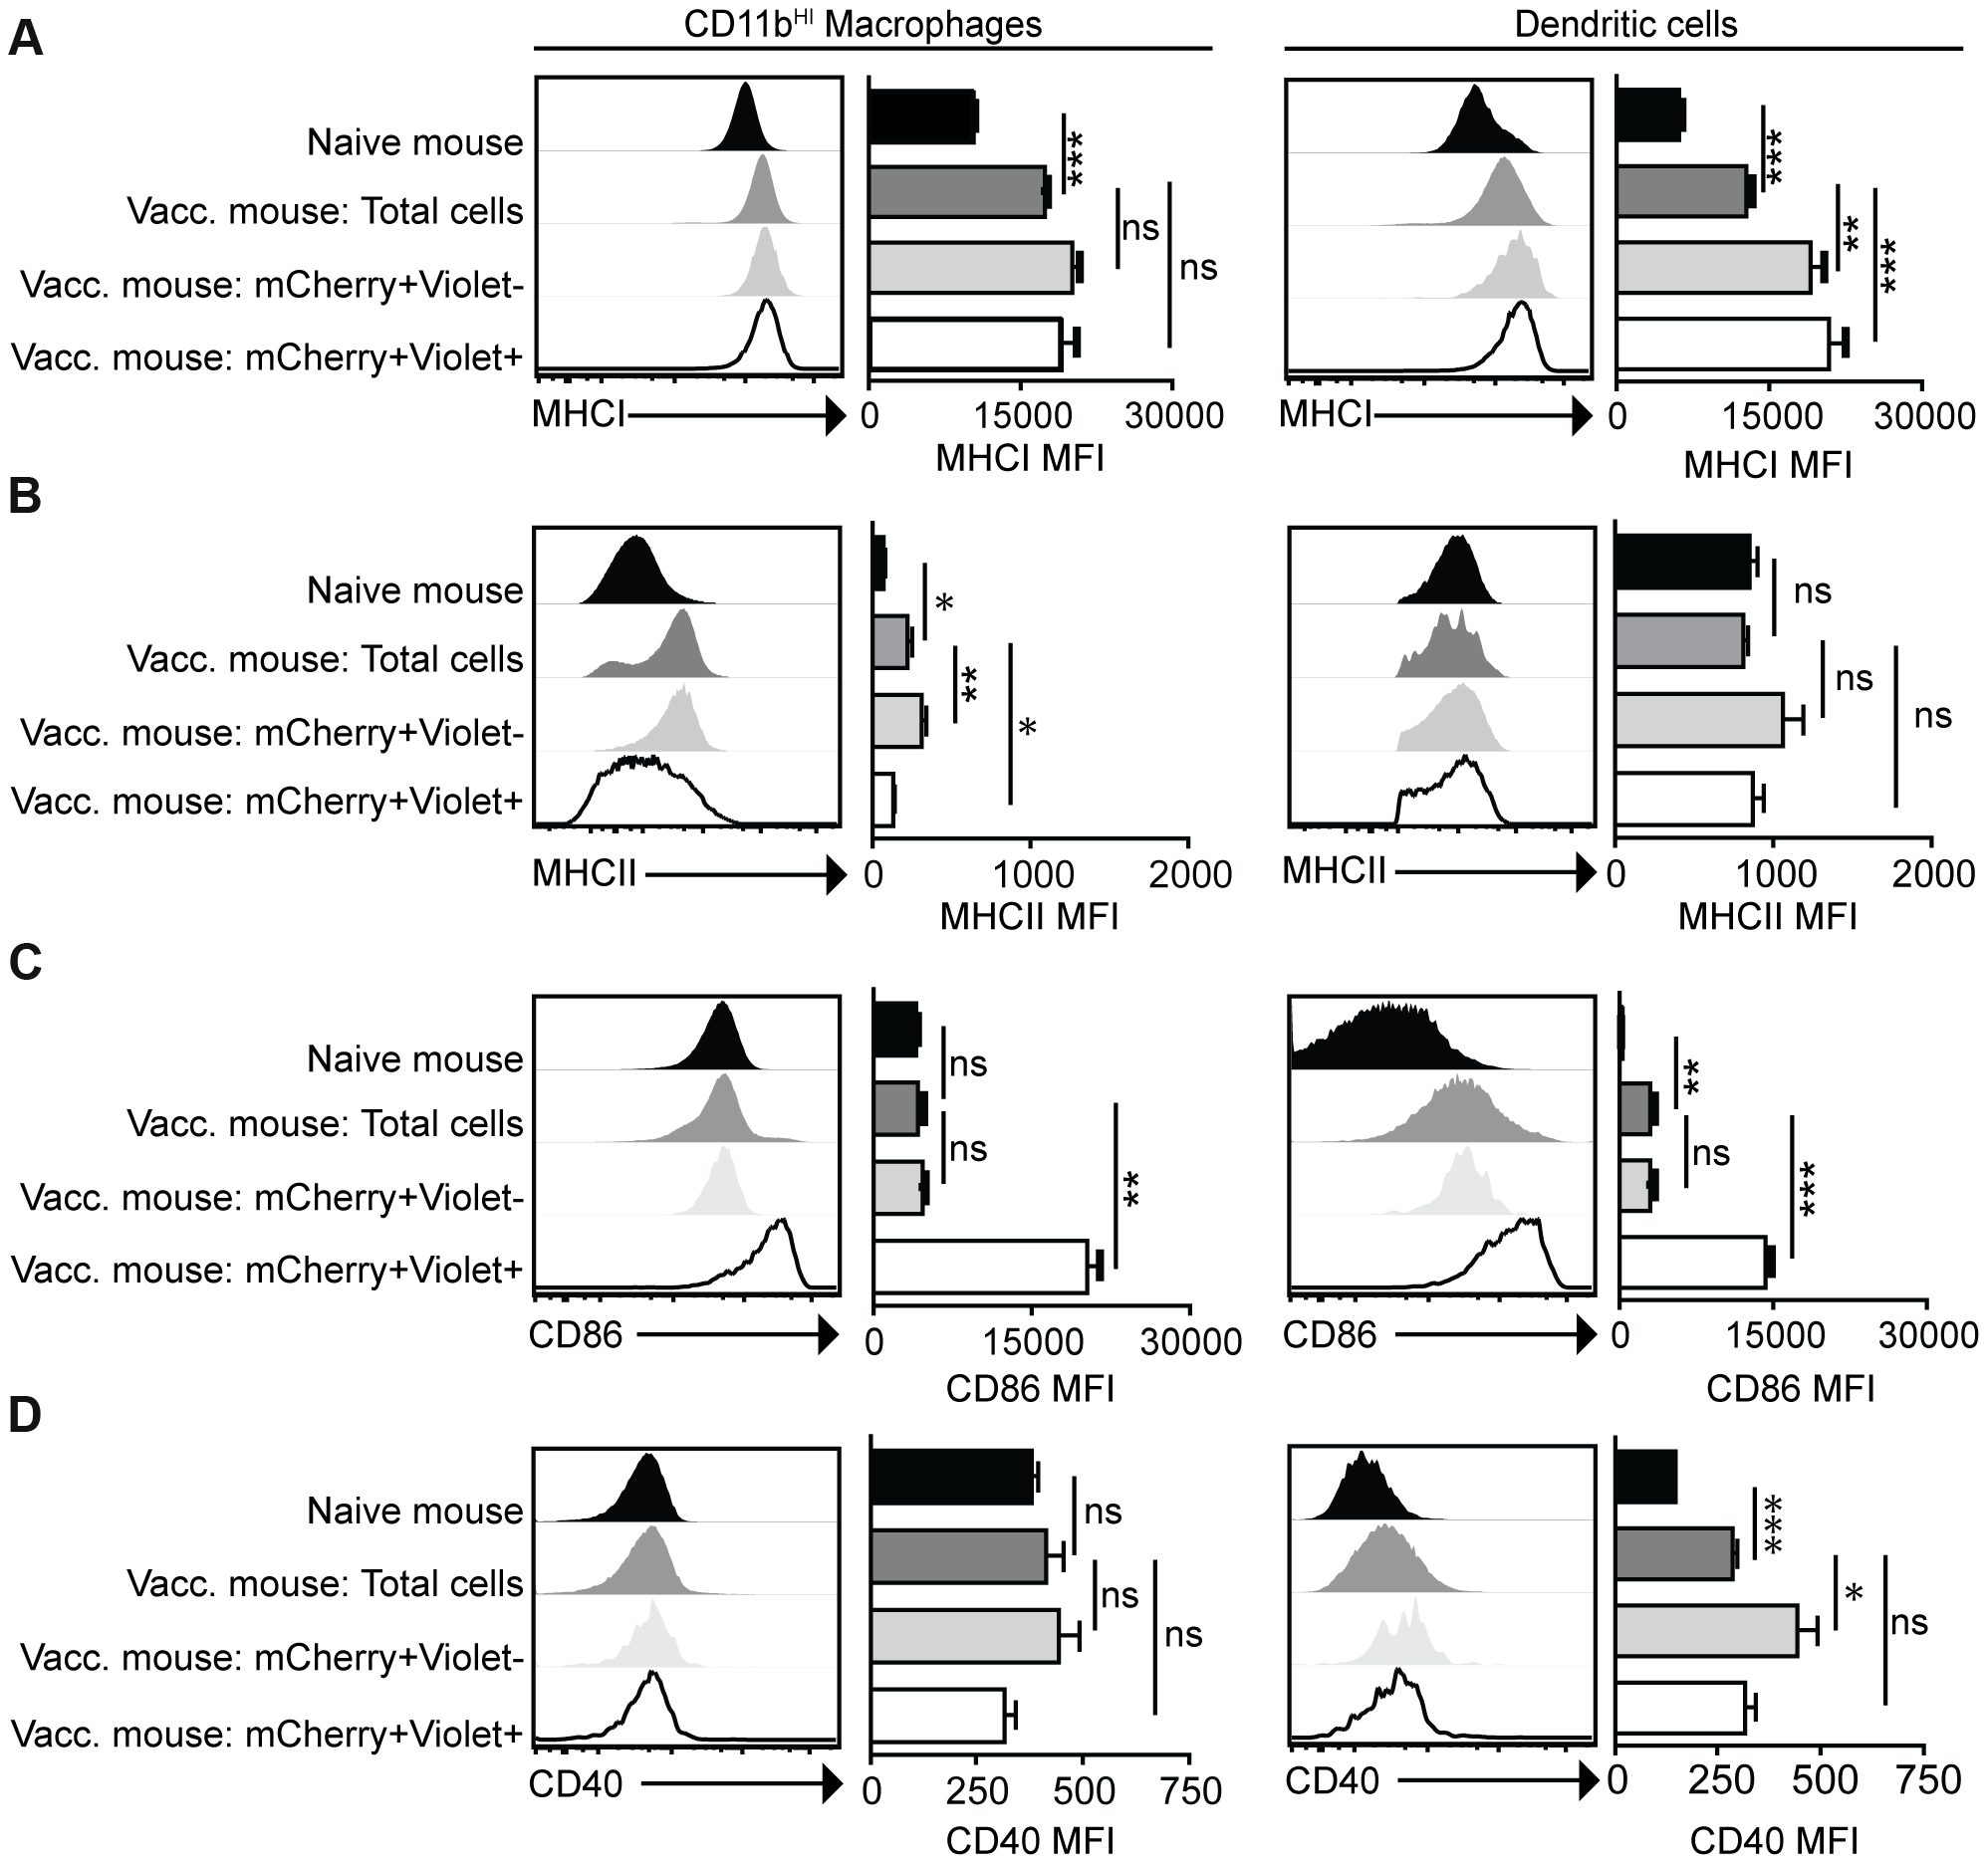 Activation status of mCherry<sup>+ve</sup>Violet<sup>−ve</sup> and mCherry<sup>+ve</sup>Violet<sup>+ve</sup> macrophages and dendritic cells.